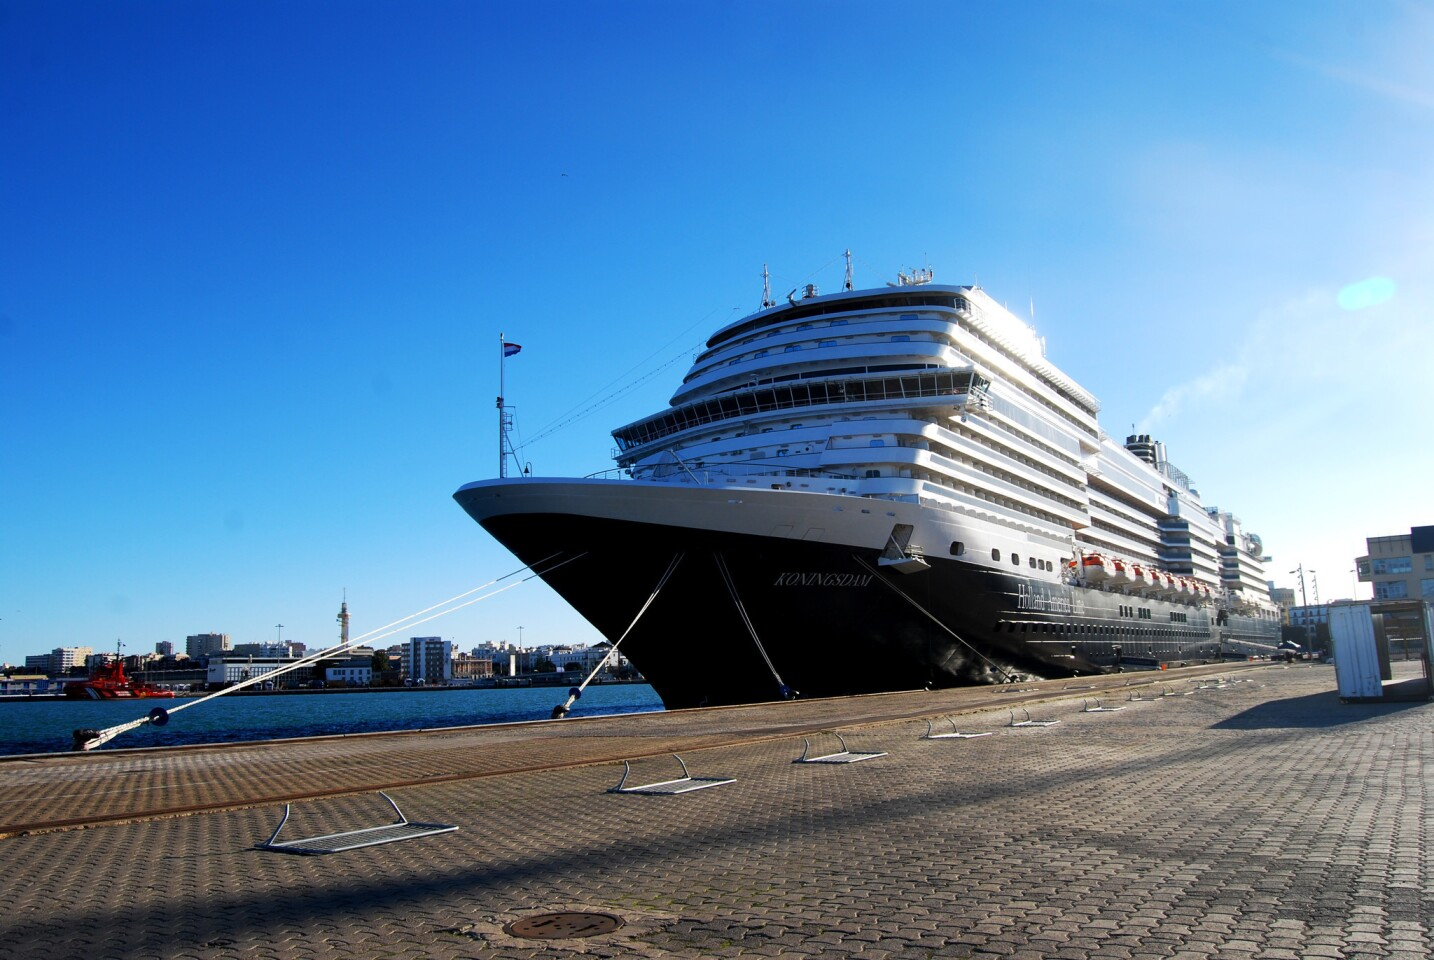 A new ship takes time to get used to: The Koningsdam